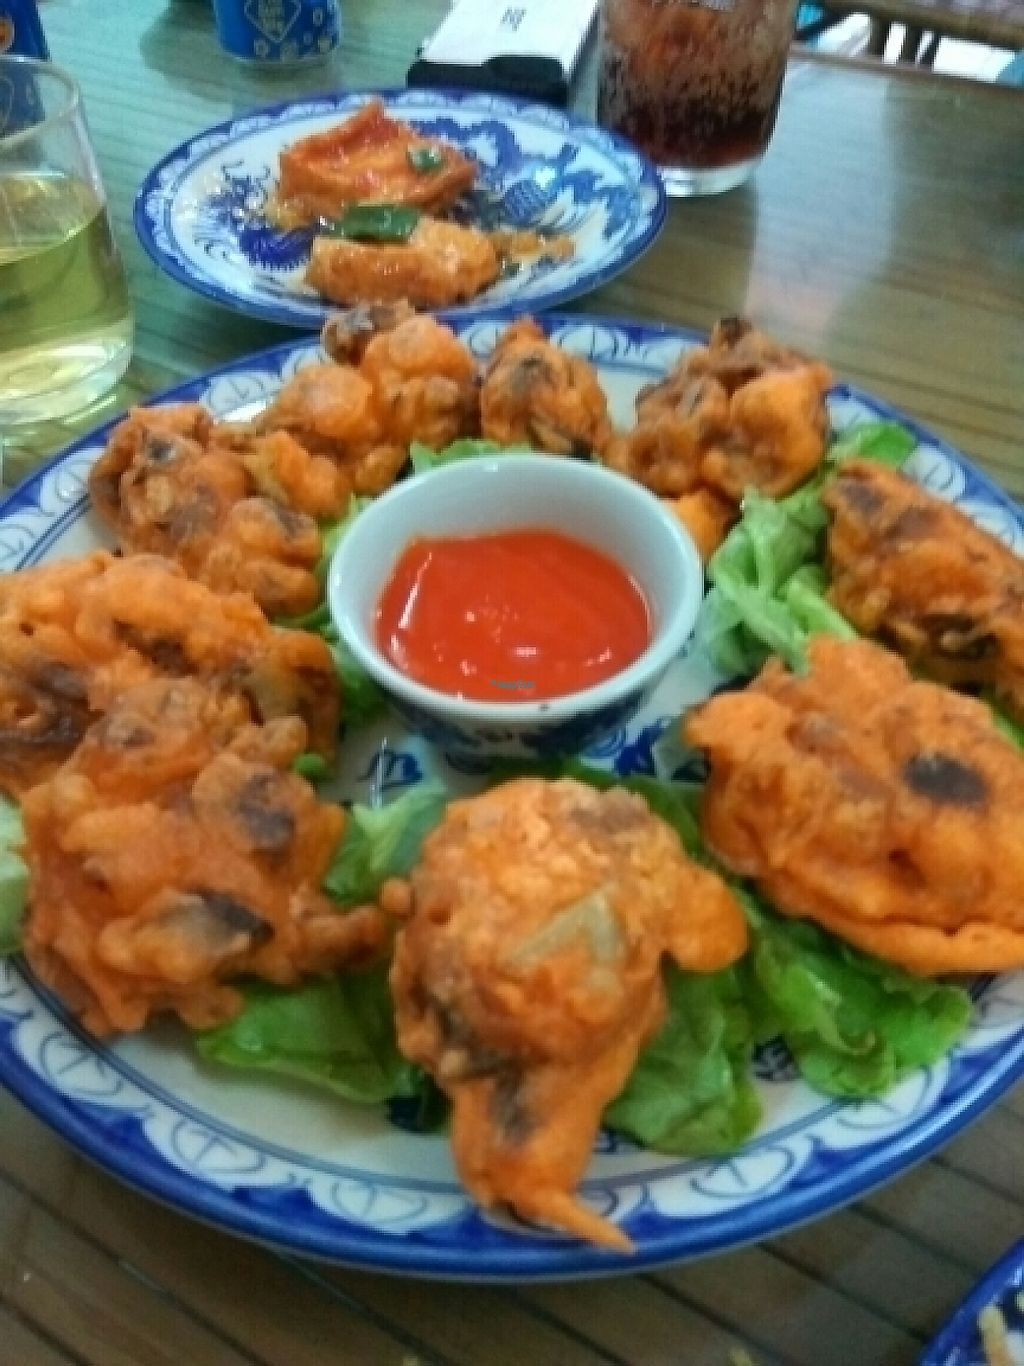 """Photo of Lien Hoa  by <a href=""""/members/profile/Miggi"""">Miggi</a> <br/>Deep Fried Mushrooms in Batter <br/> December 31, 2016  - <a href='/contact/abuse/image/54382/206462'>Report</a>"""